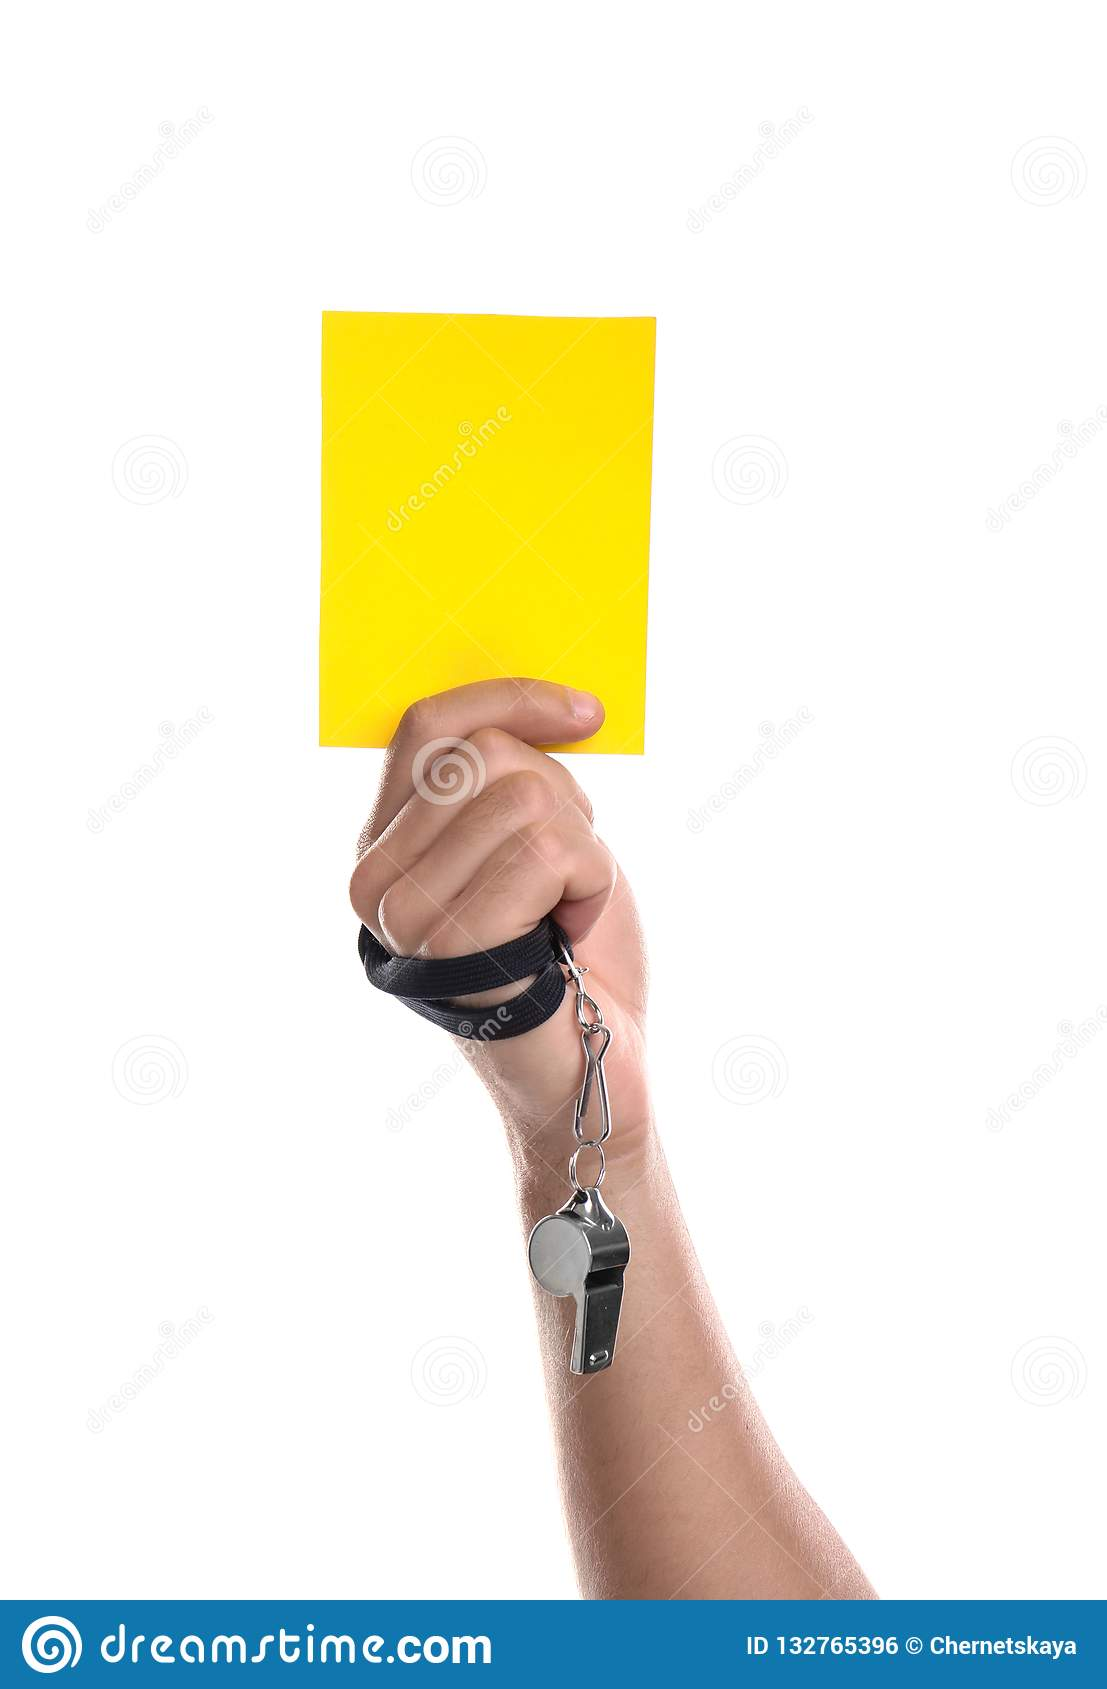 Football referee with whistle holding yellow card on white background